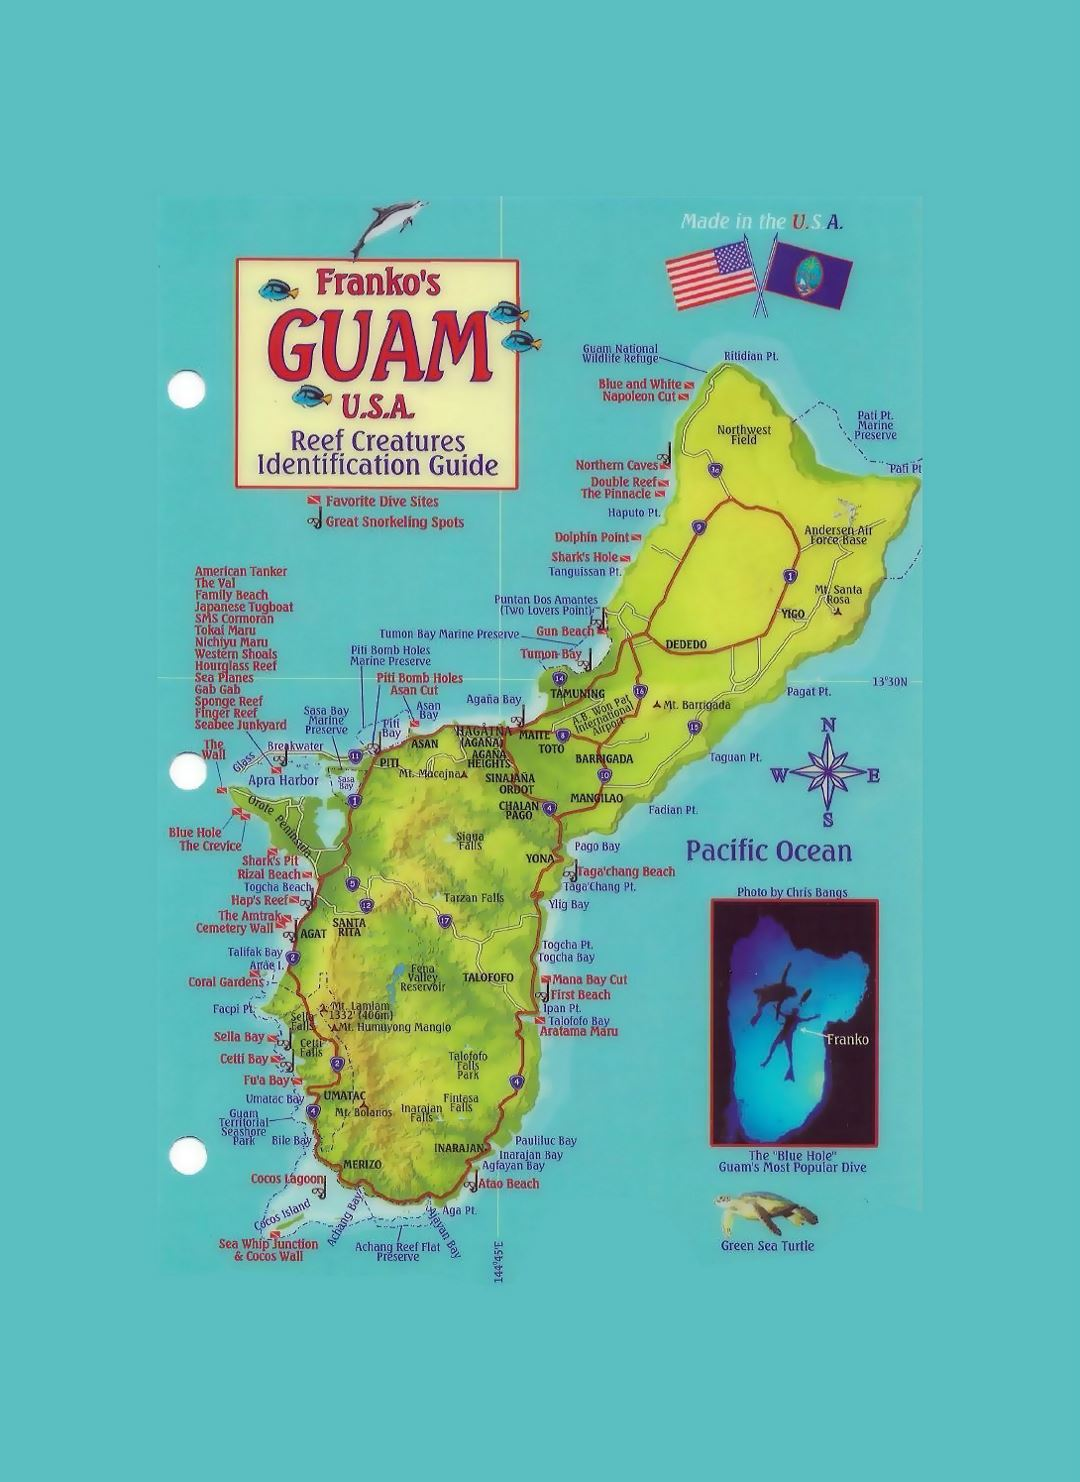 Detailed tourist map of Guam with other marks